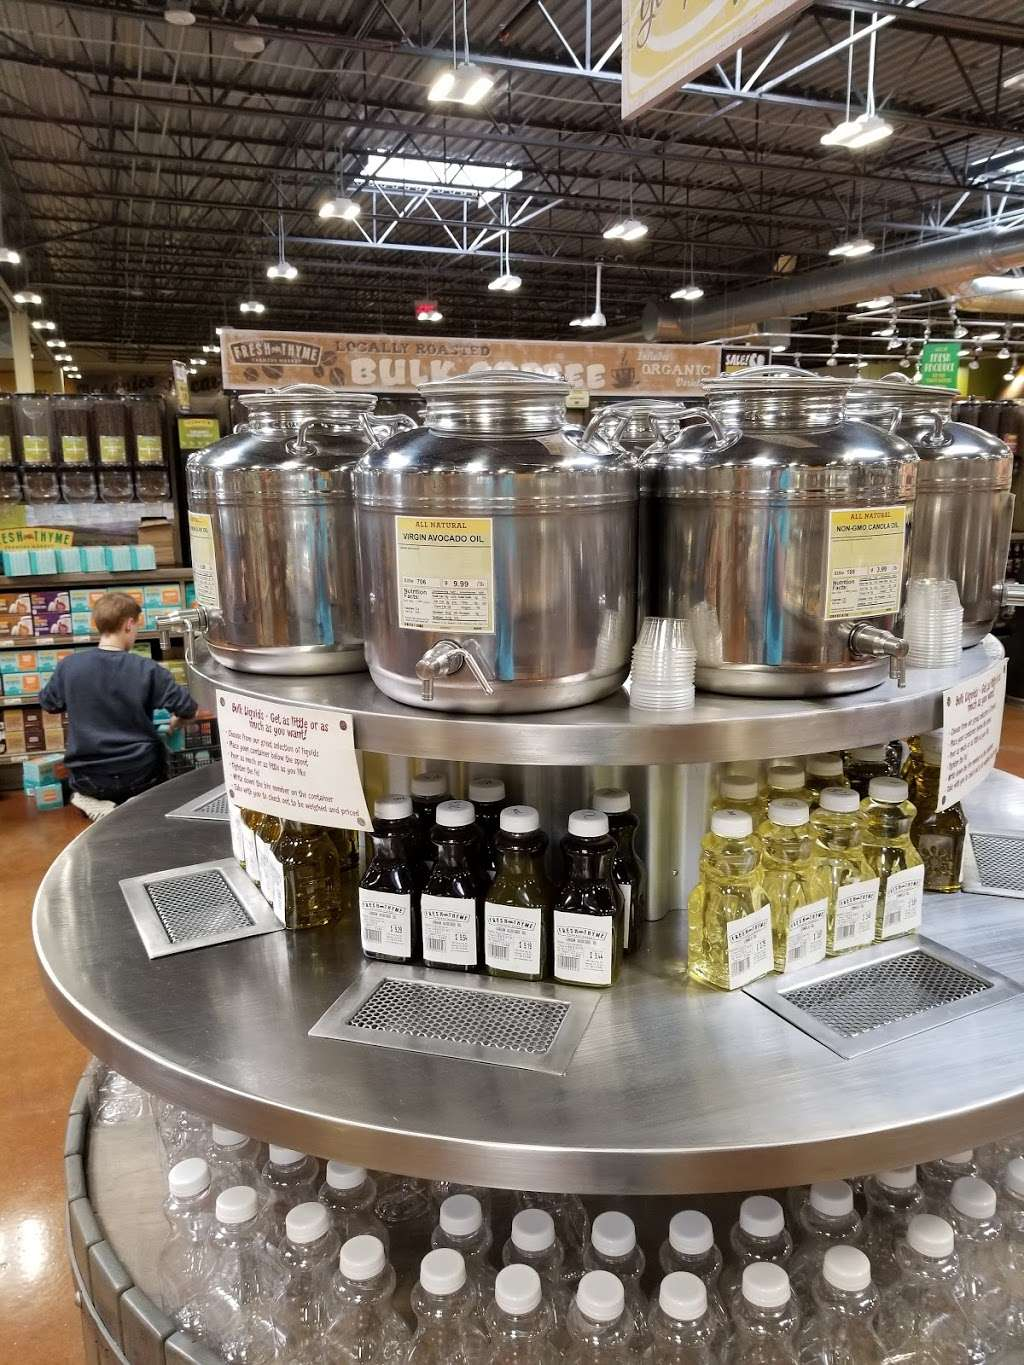 Fresh Thyme Farmers Market - store  | Photo 8 of 10 | Address: 7100 Green Bay Rd, Kenosha, WI 53142, USA | Phone: (262) 612-8495